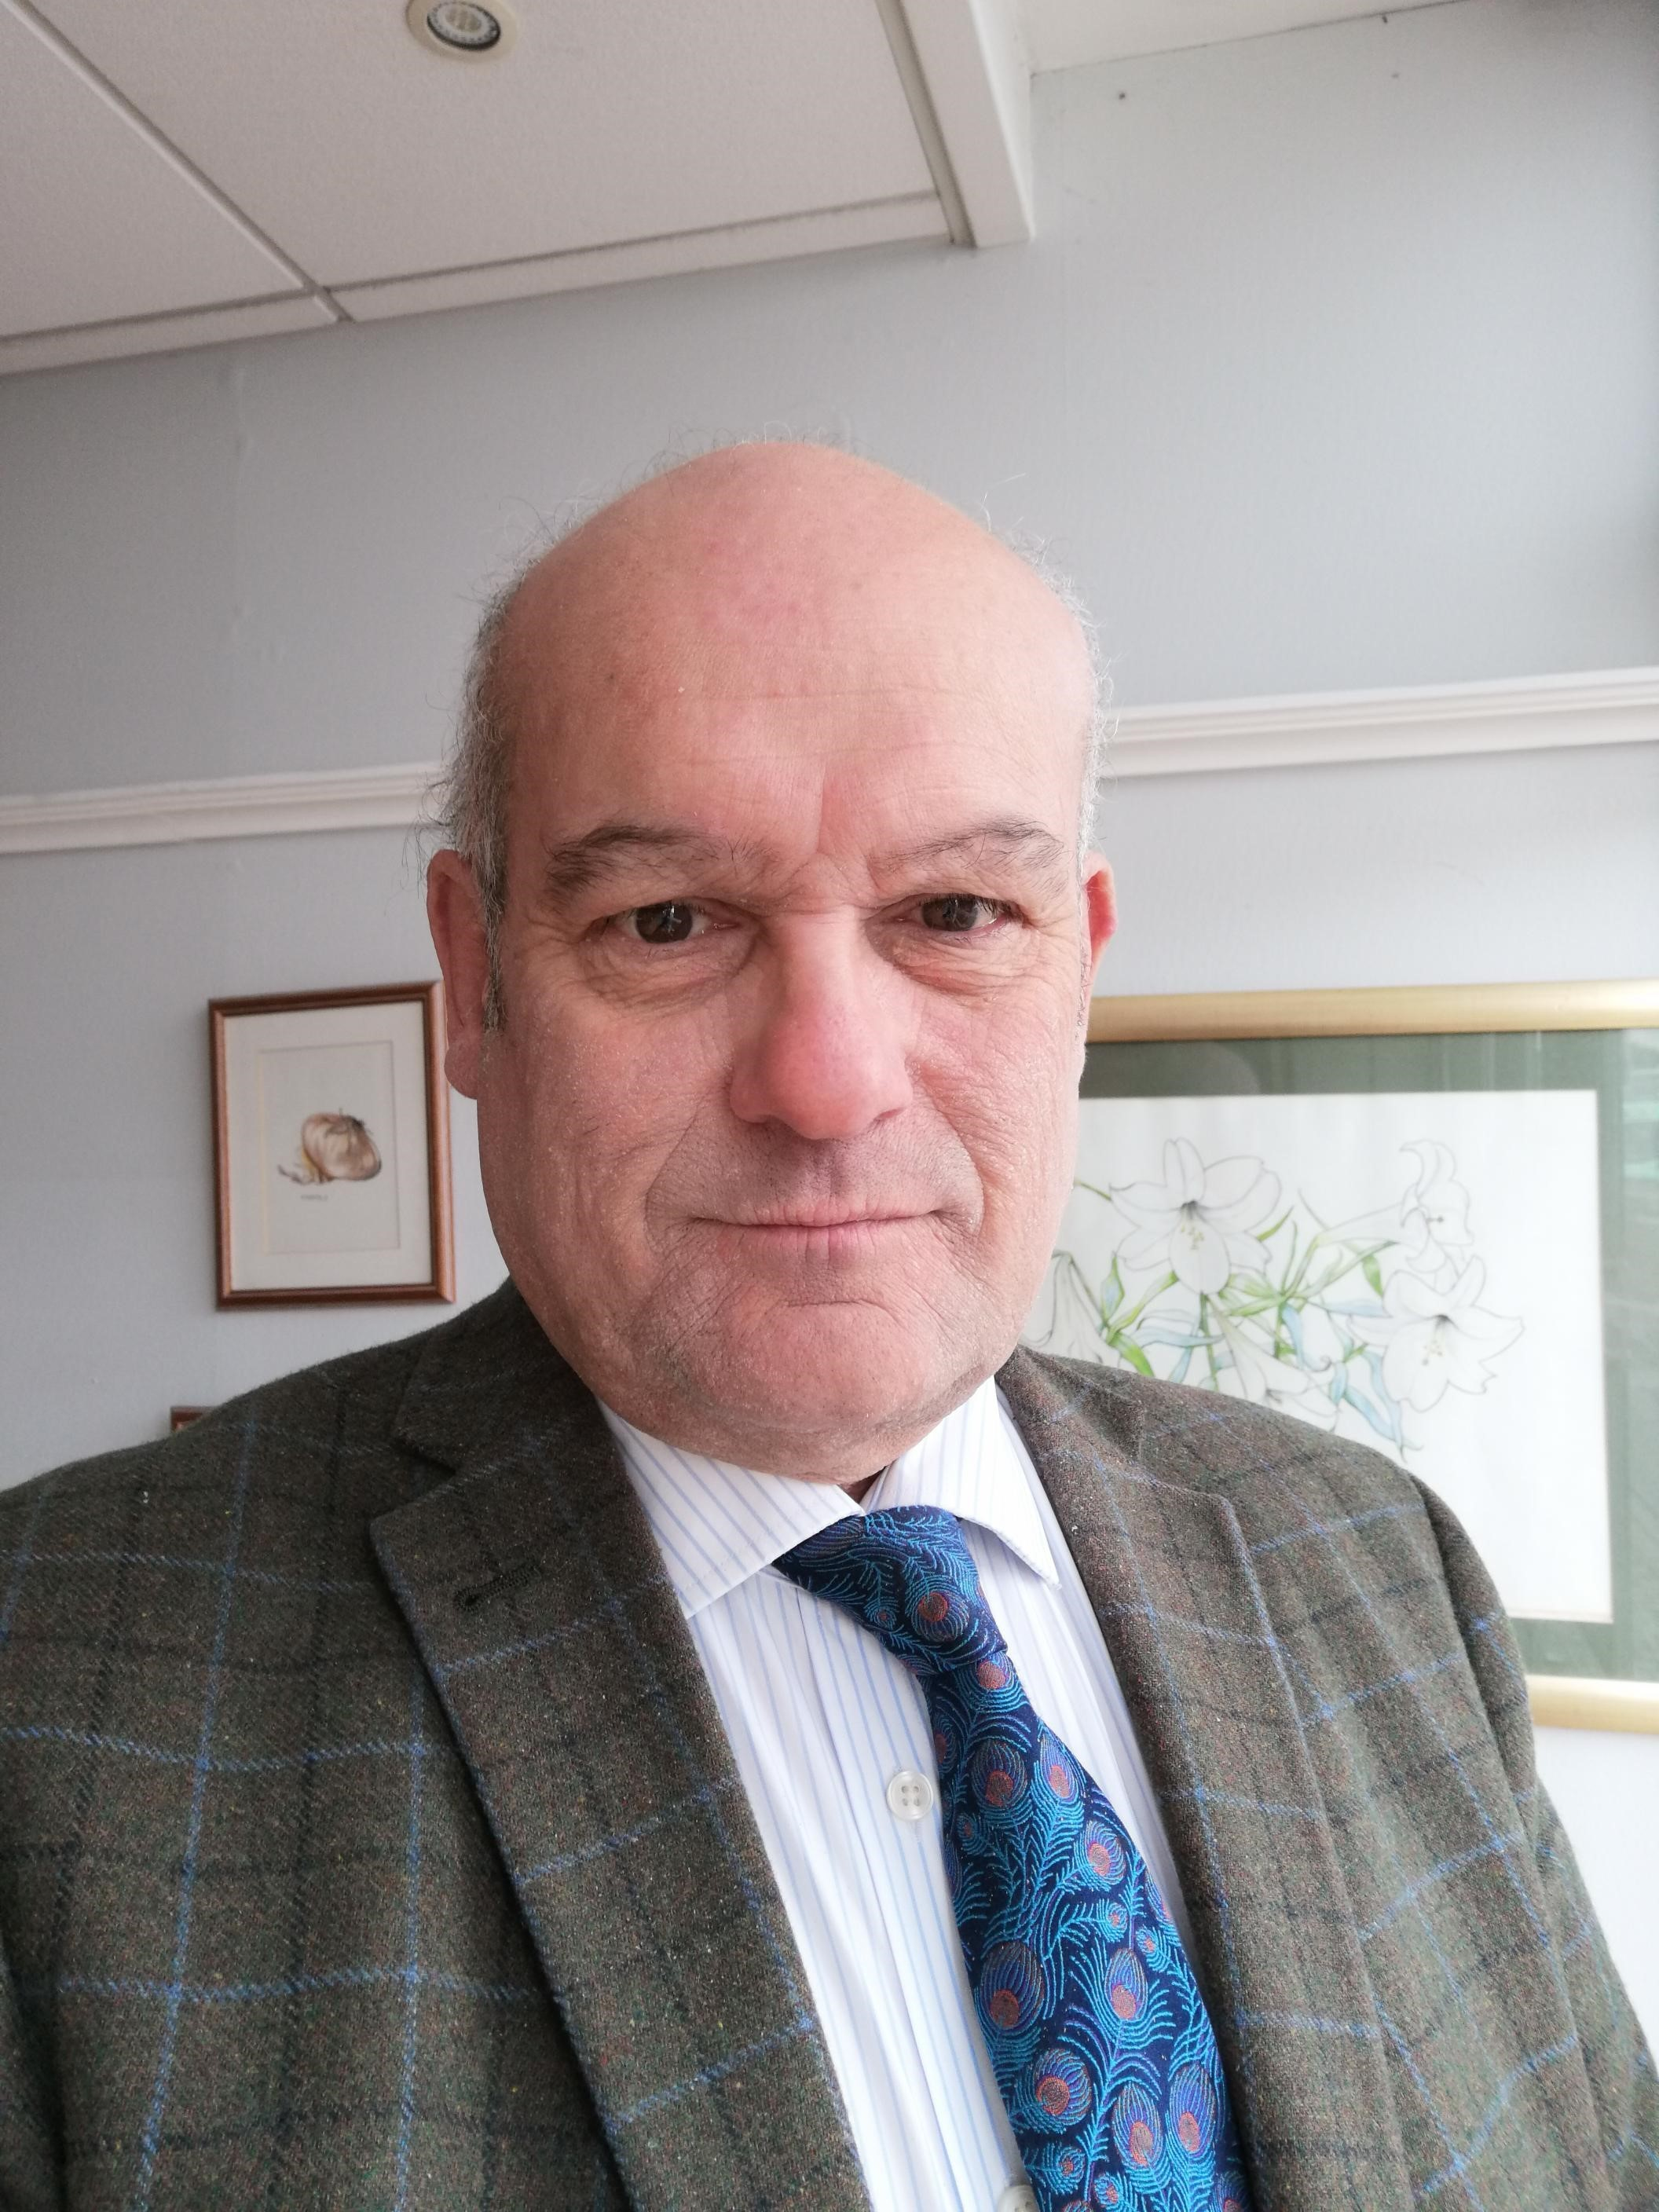 Glasgow solicitor Austin Lafferty appointed Dean of city's Royal Faculty of Procurators